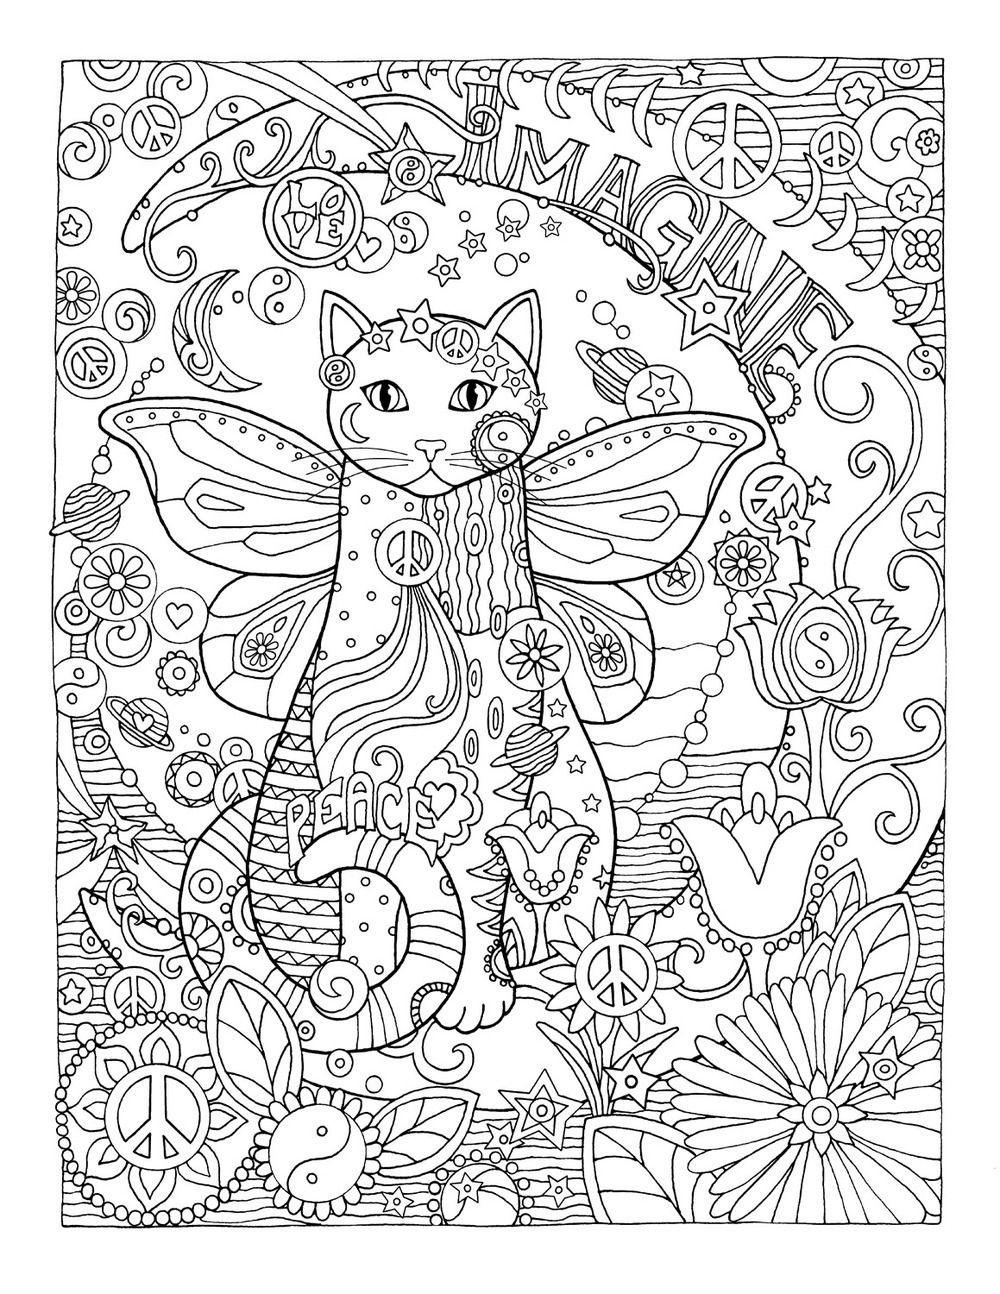 Creative Cats Colouring Book ~ Imagine by Marjorie Sarnat